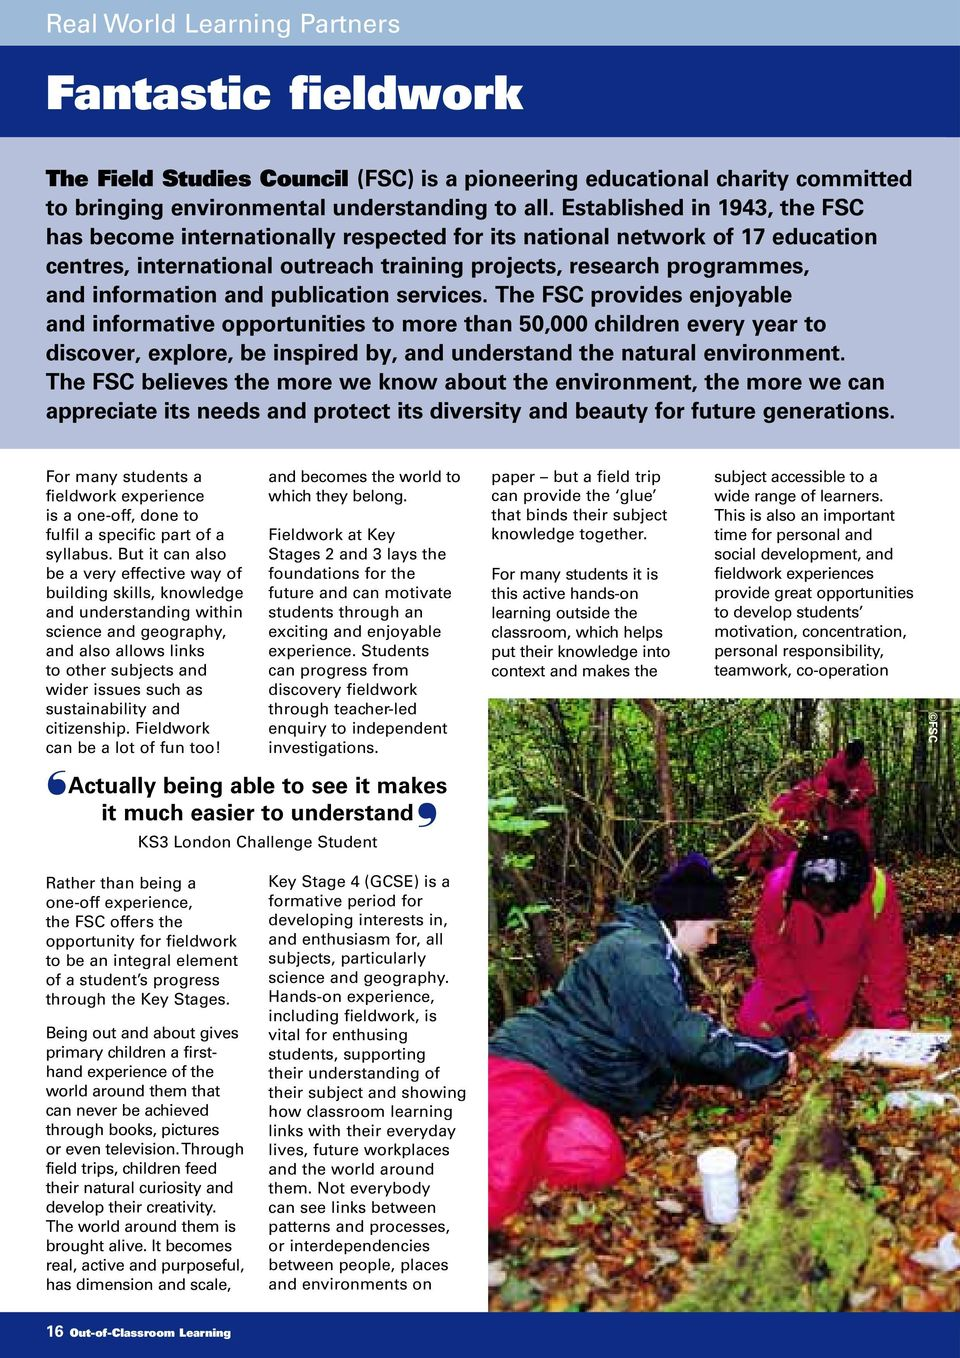 publication services. The FSC provides enjoyable and informative opportunities to more than 50,000 children every year to discover, explore, be inspired by, and understand the natural environment.